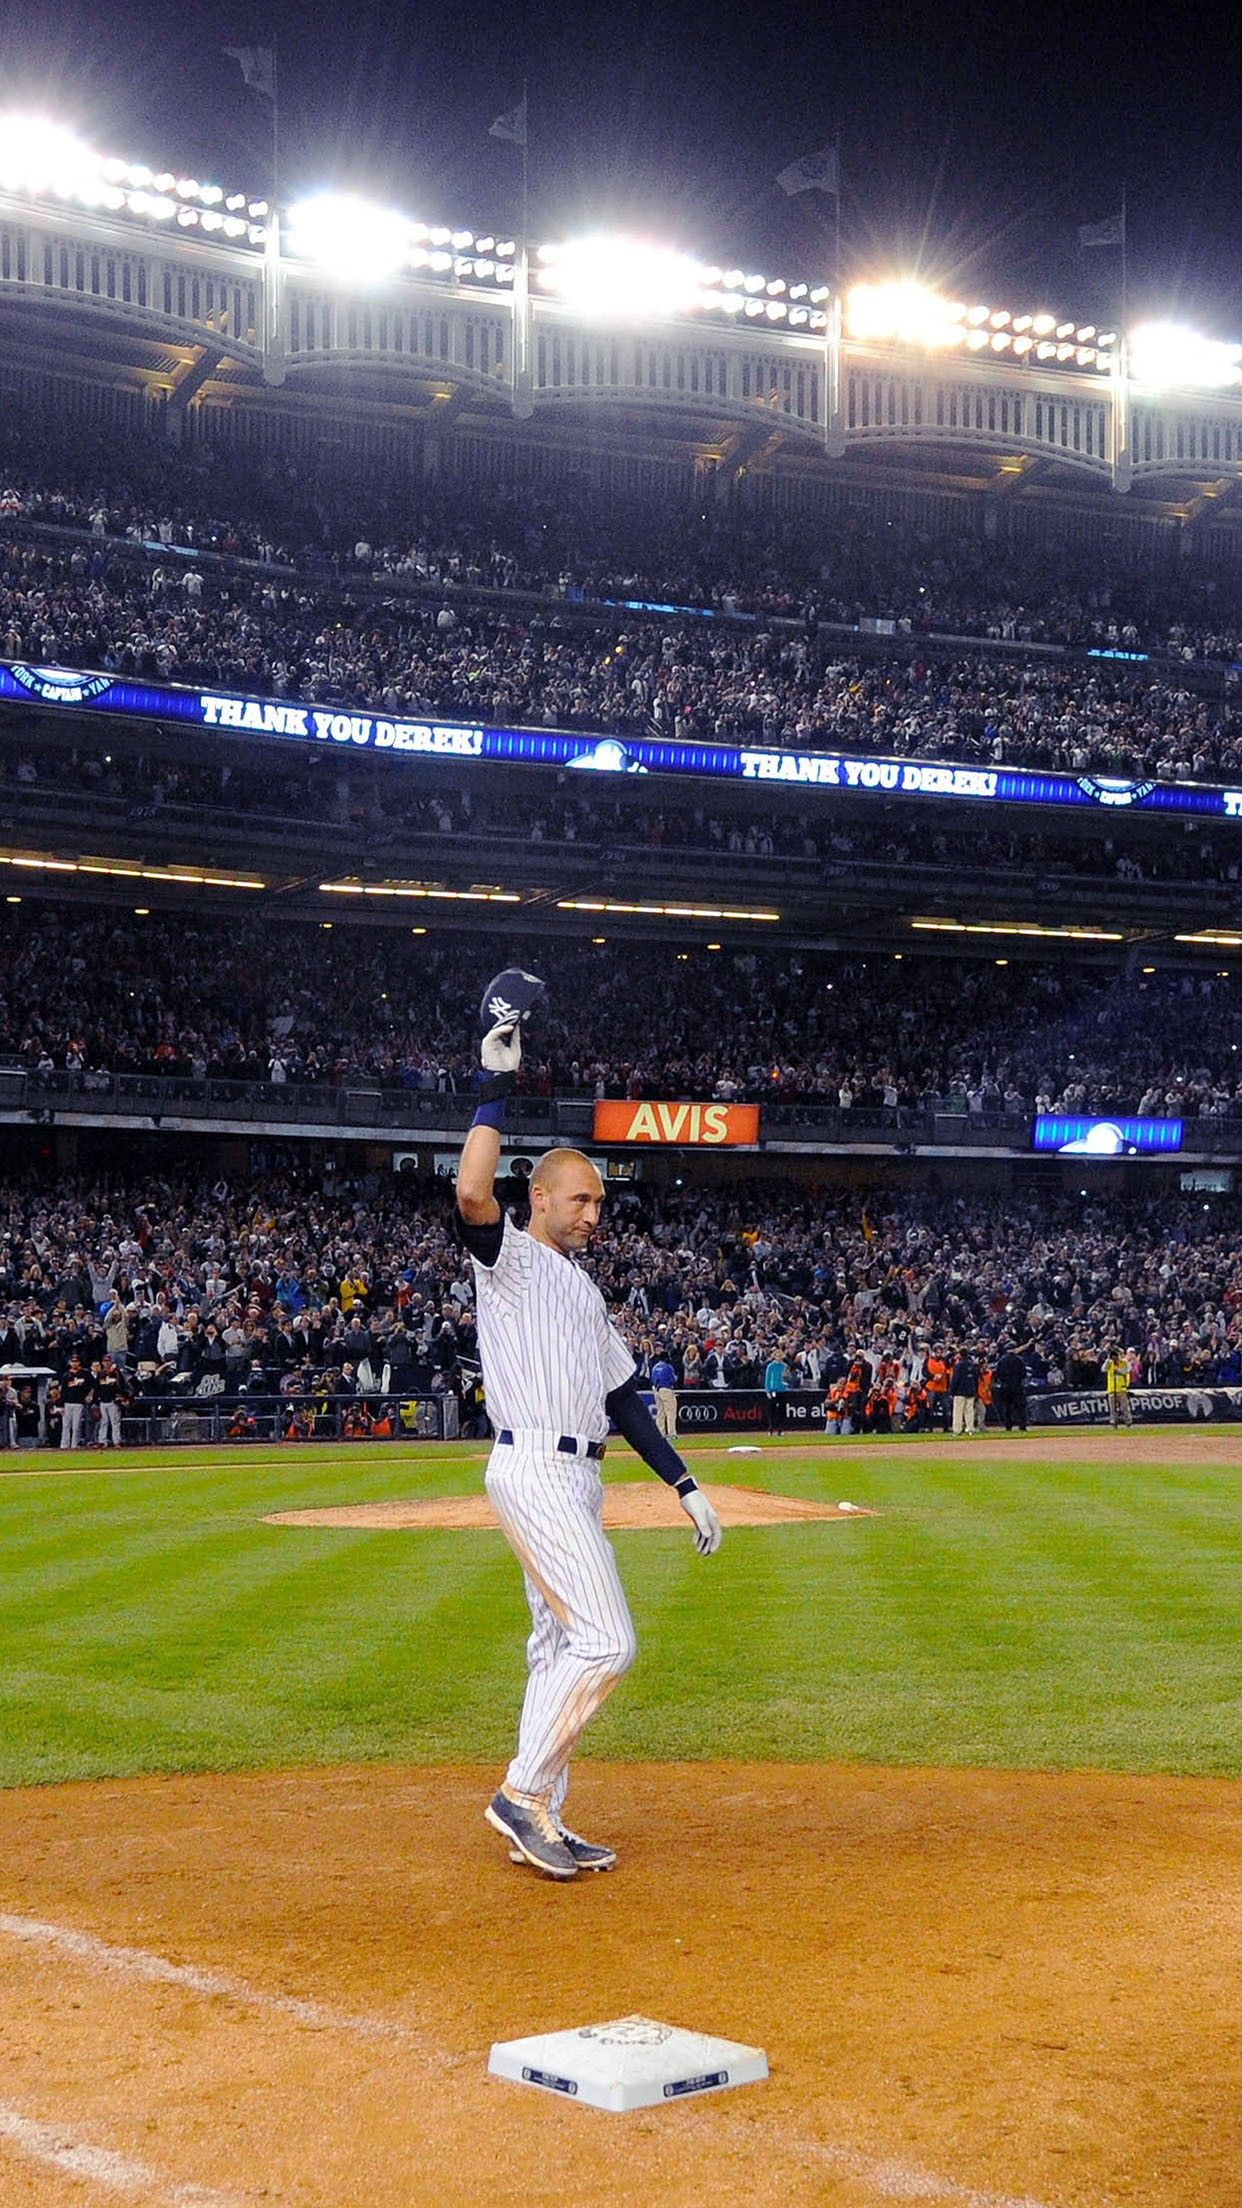 Derek Jeter Walk Off Single New York Yankees Smartphone Wallpaper And Lockscreen Hd